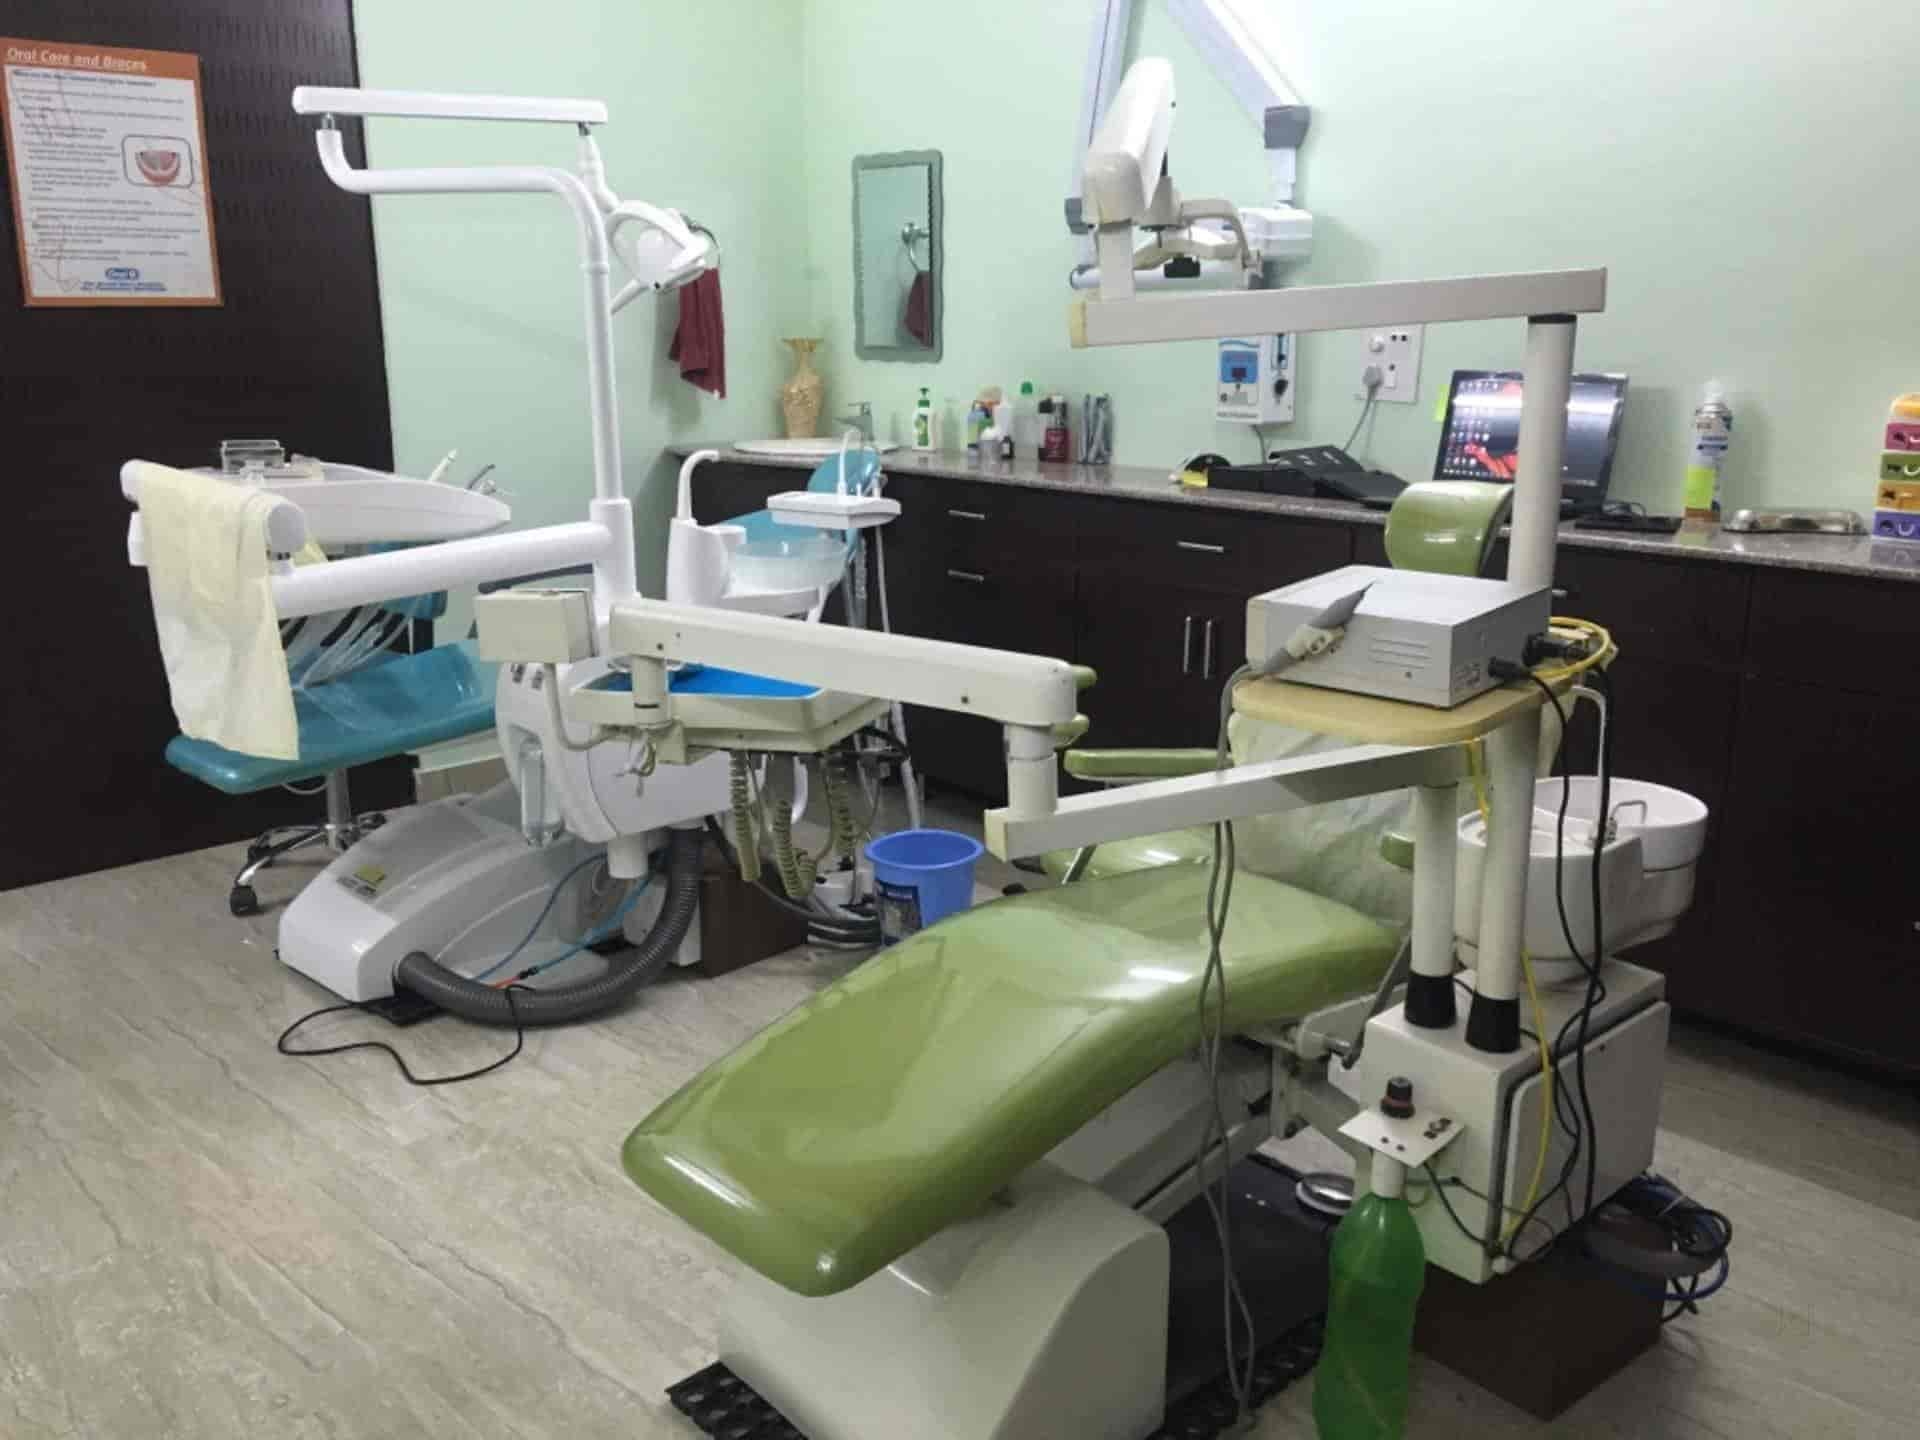 Ny Family Dental Care - Dentists - Book Appointment Online - Dentists in Mohali Sector 125, Kharar, Chandigarh - JustDial